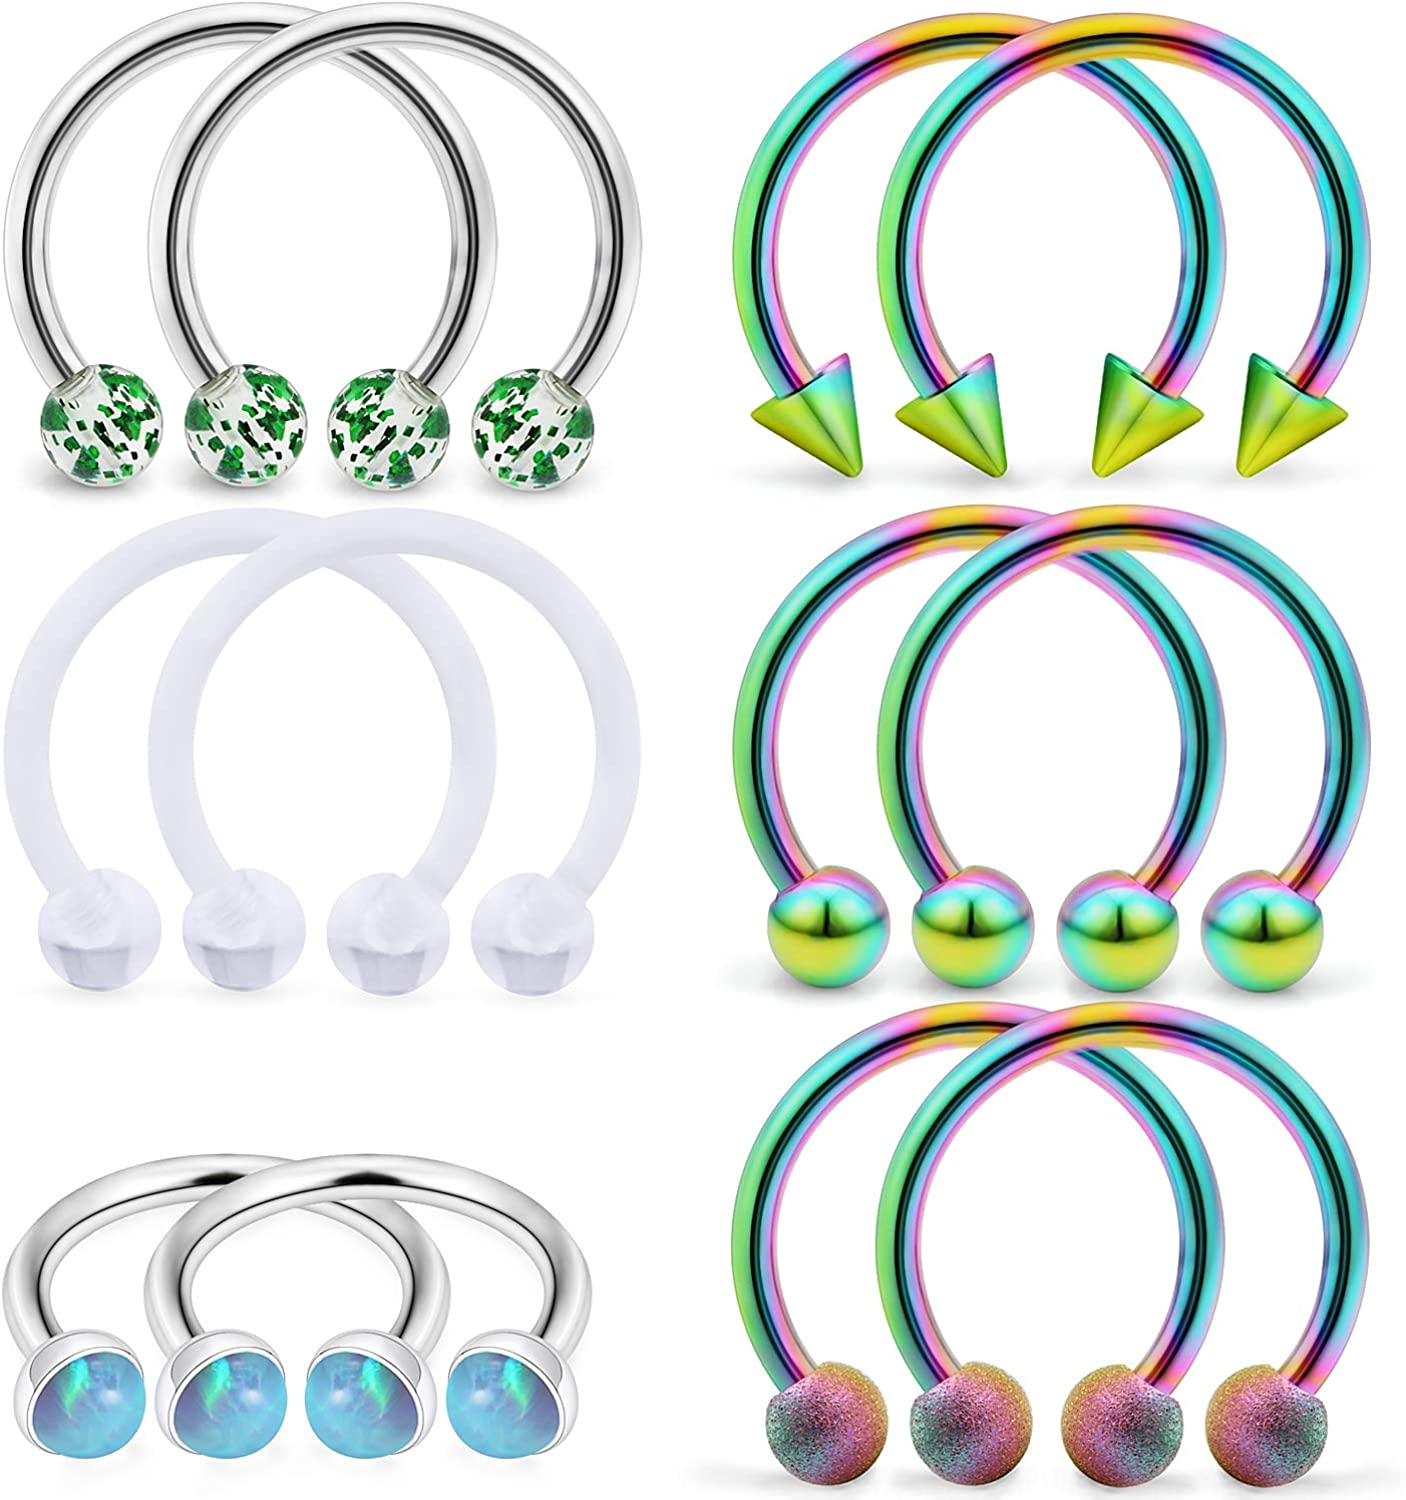 SCERRING 6 Pairs 16G Stainless Steel Horseshoe Septum Ring Nose Rings Hoop Helix Daith Cartilage Tragus Earrings Lip Body Piercing Jewelry Opal 8mm 10mm